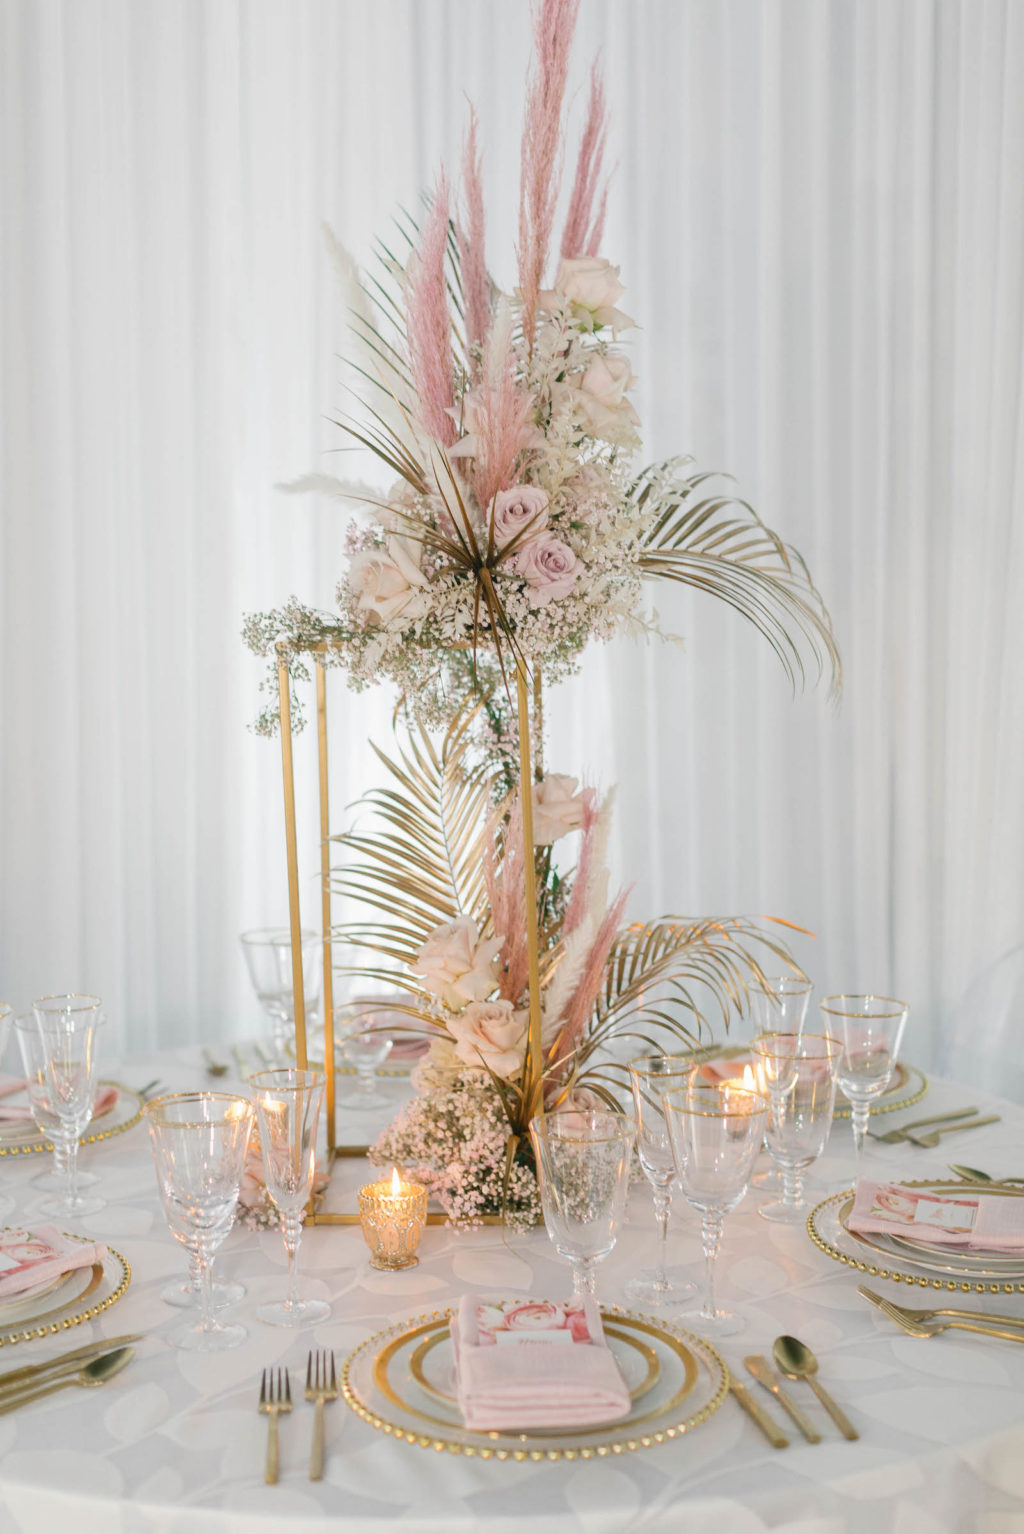 Clearwater Beach Wedding Venue Bellwether Beach Resort Styled With Love Something Bleu by McKenna Bleu | Instagram Wedding Designer Inspiration | Reception Table Linen with Gold Beaded Edge Charger and Gold Flatware with Blush Pink Napkin and Floral Menu Card | Gold Boho Centerpiece with Pampas Grass Roses and Palm Leaves